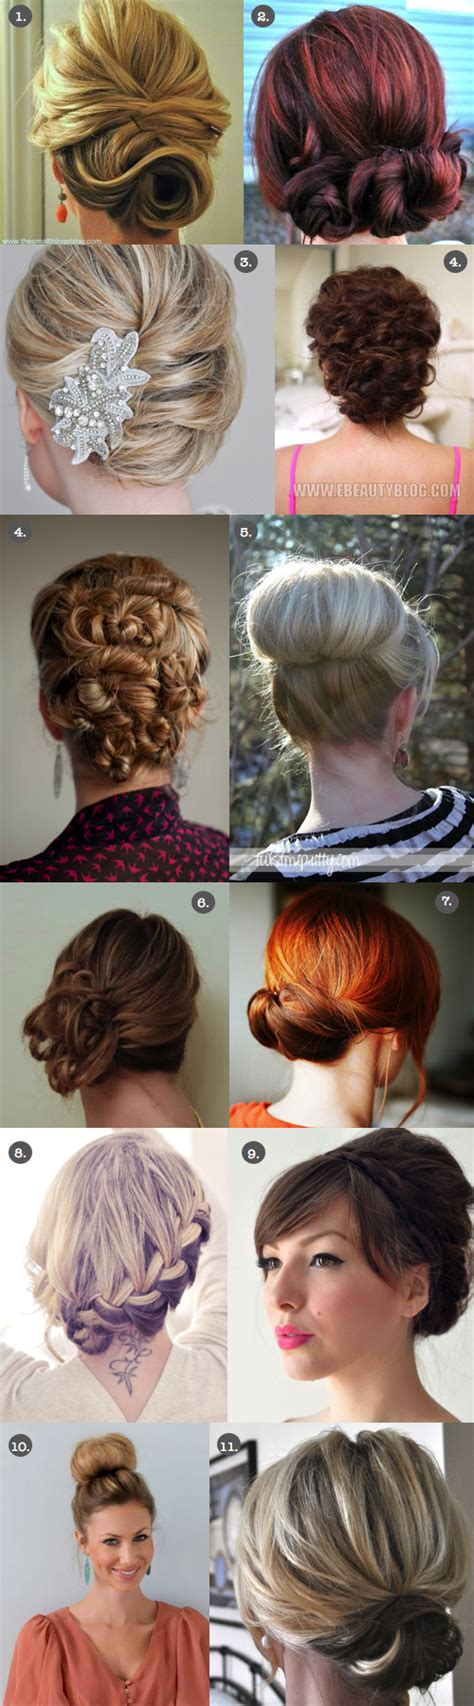 How To Do Wedding Hairstyles At Home by How To Do Wedding Hairstyles At Home Hairstyles